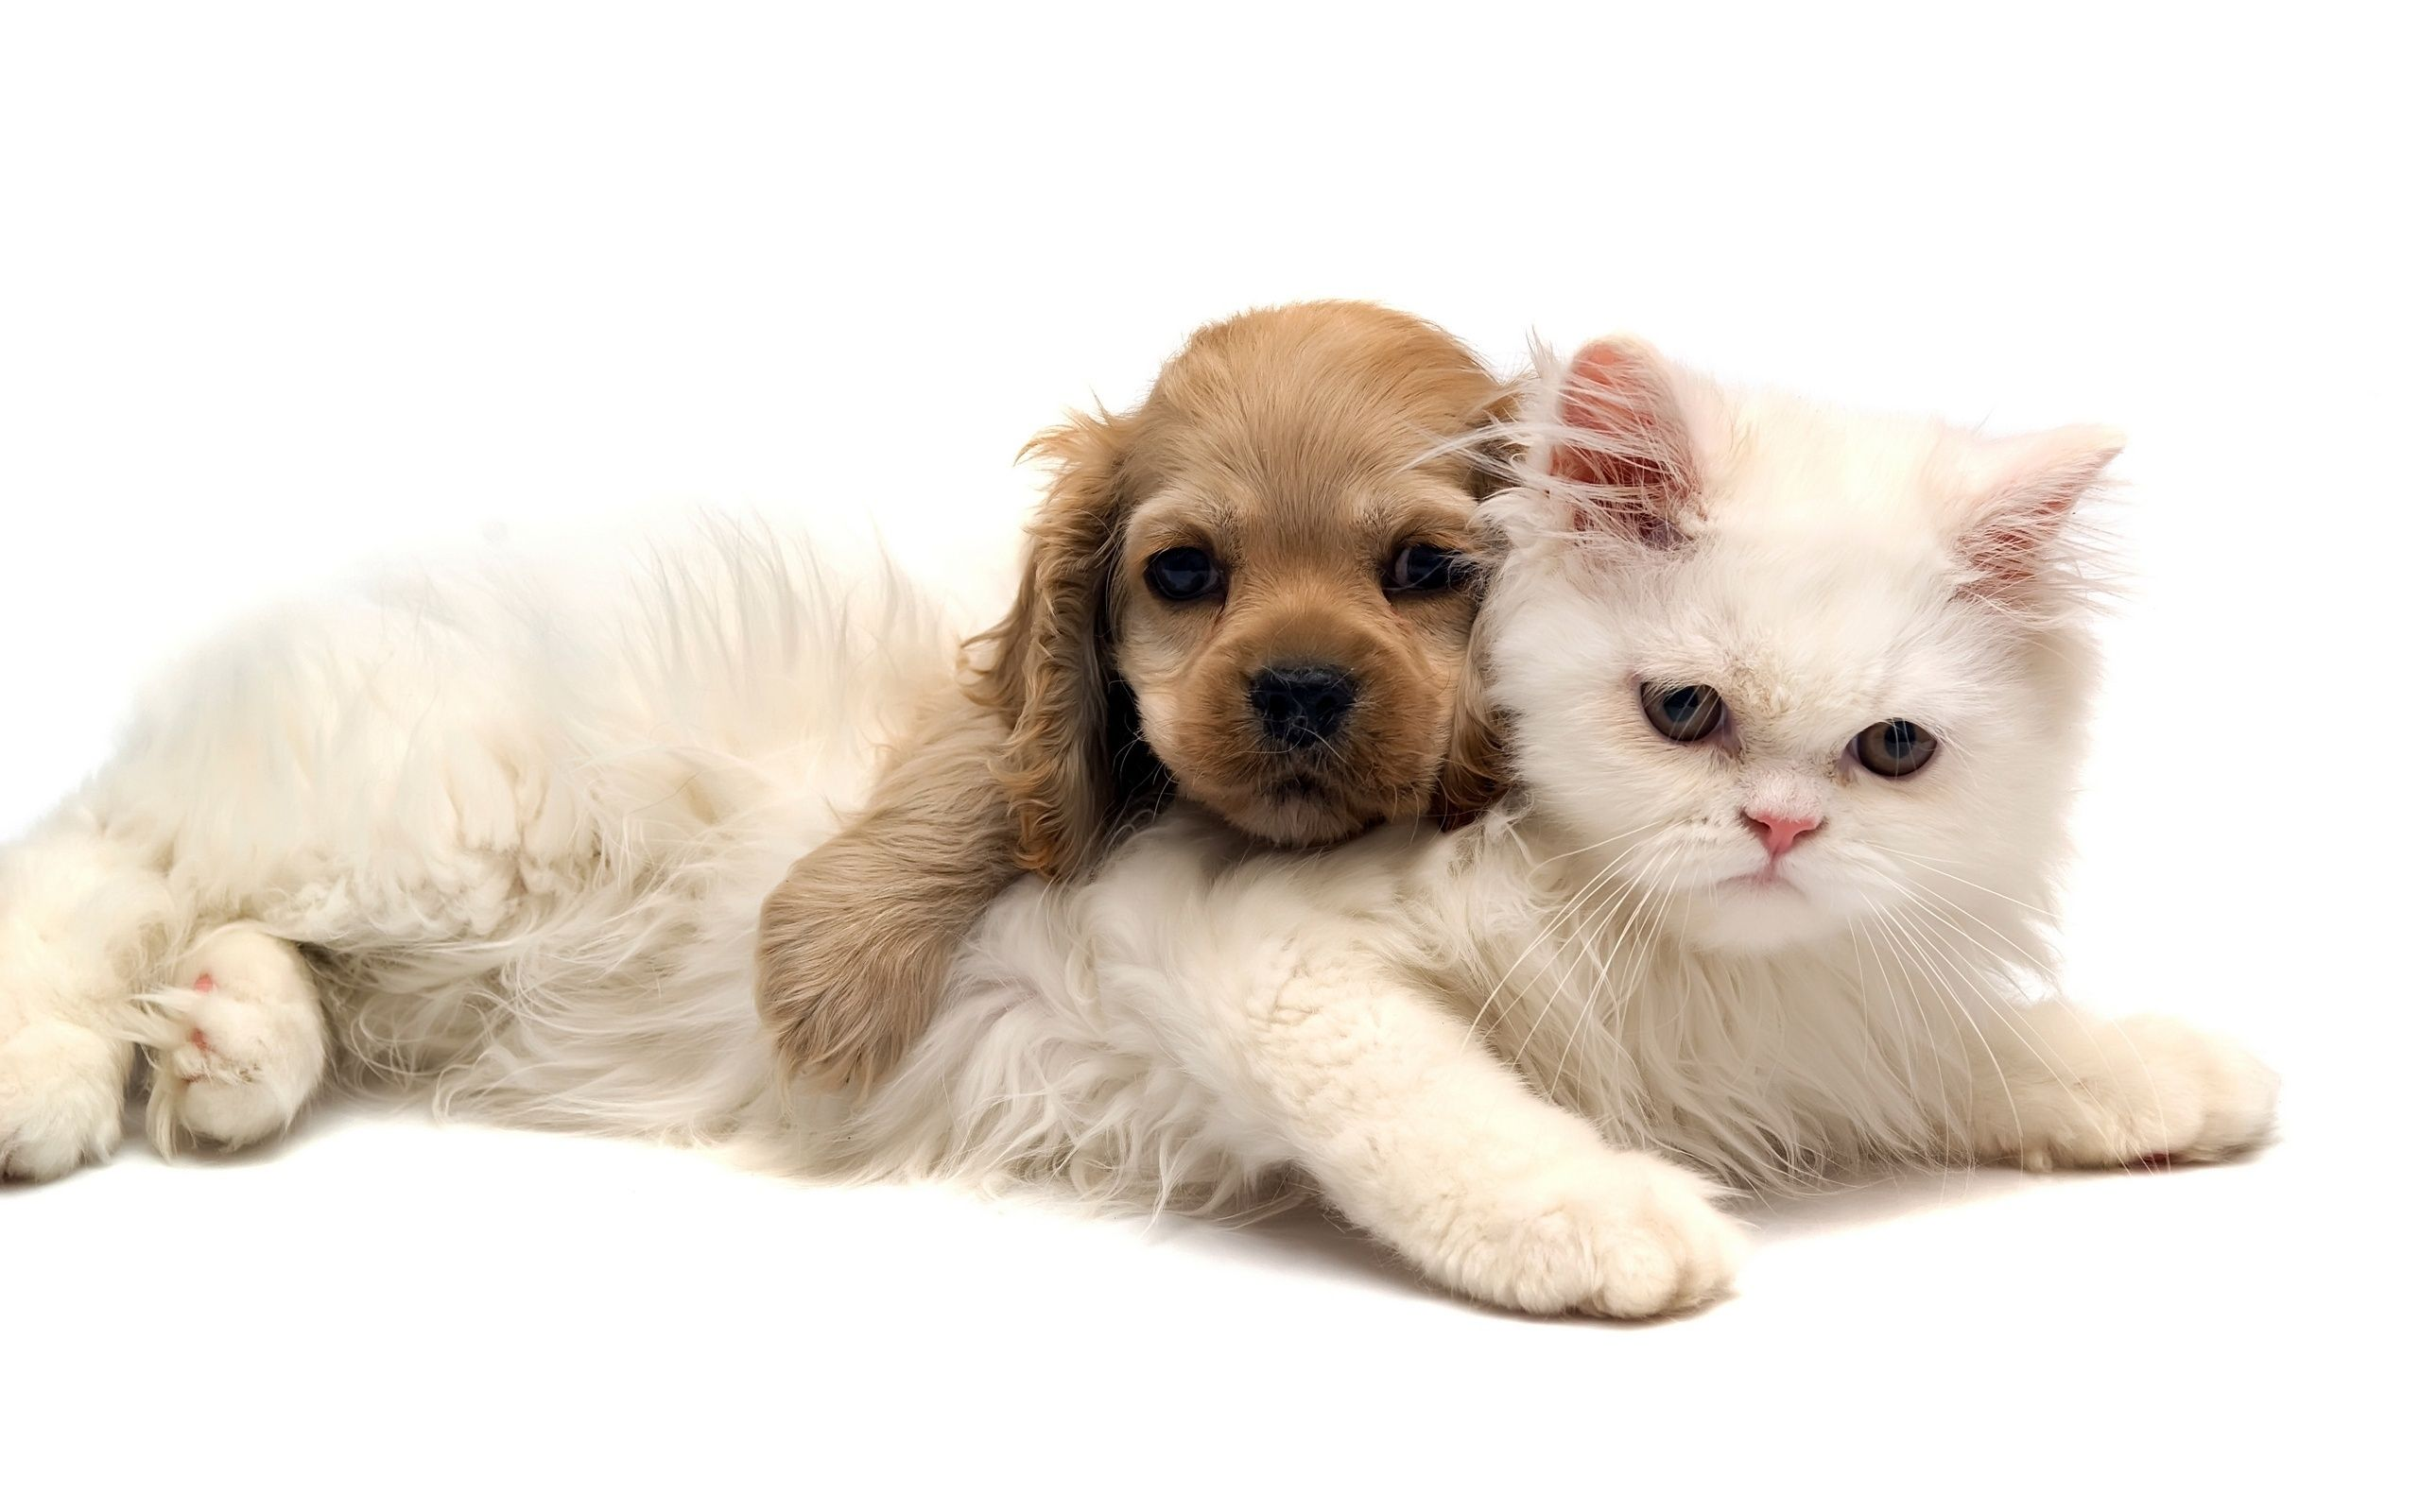 Baby cats and dogs pics wallpaper | Big house | Pinterest | Dog, Cat ...